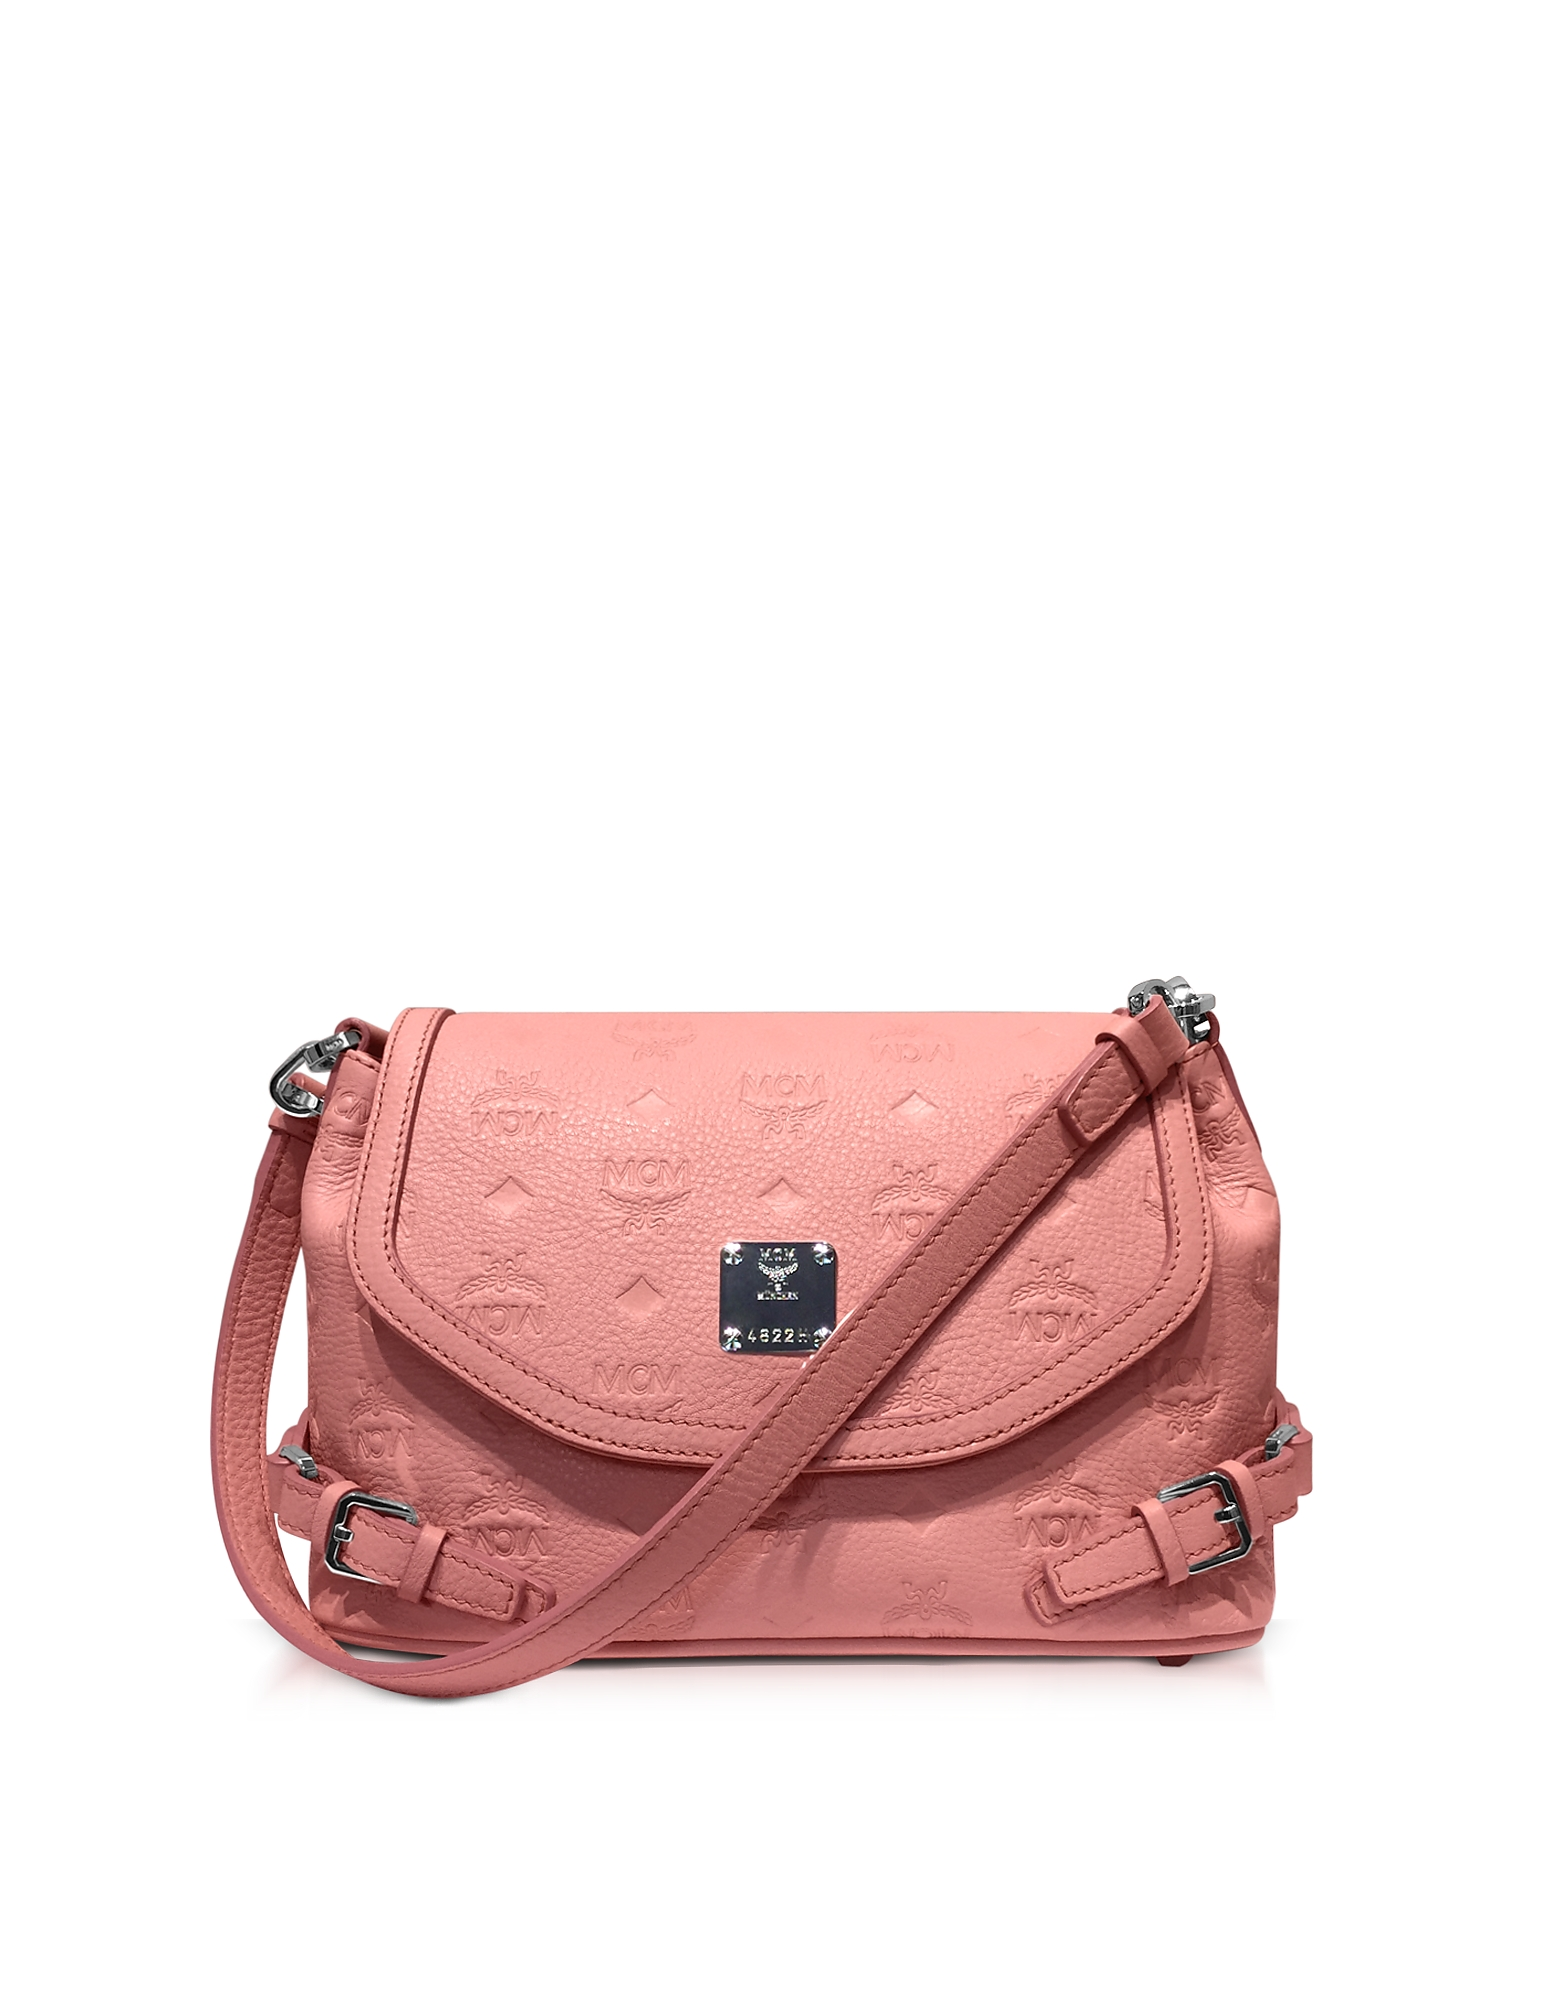 MCM Handbags, Pink Blush Signature Monogrammed Leather Small Crossbody Bag